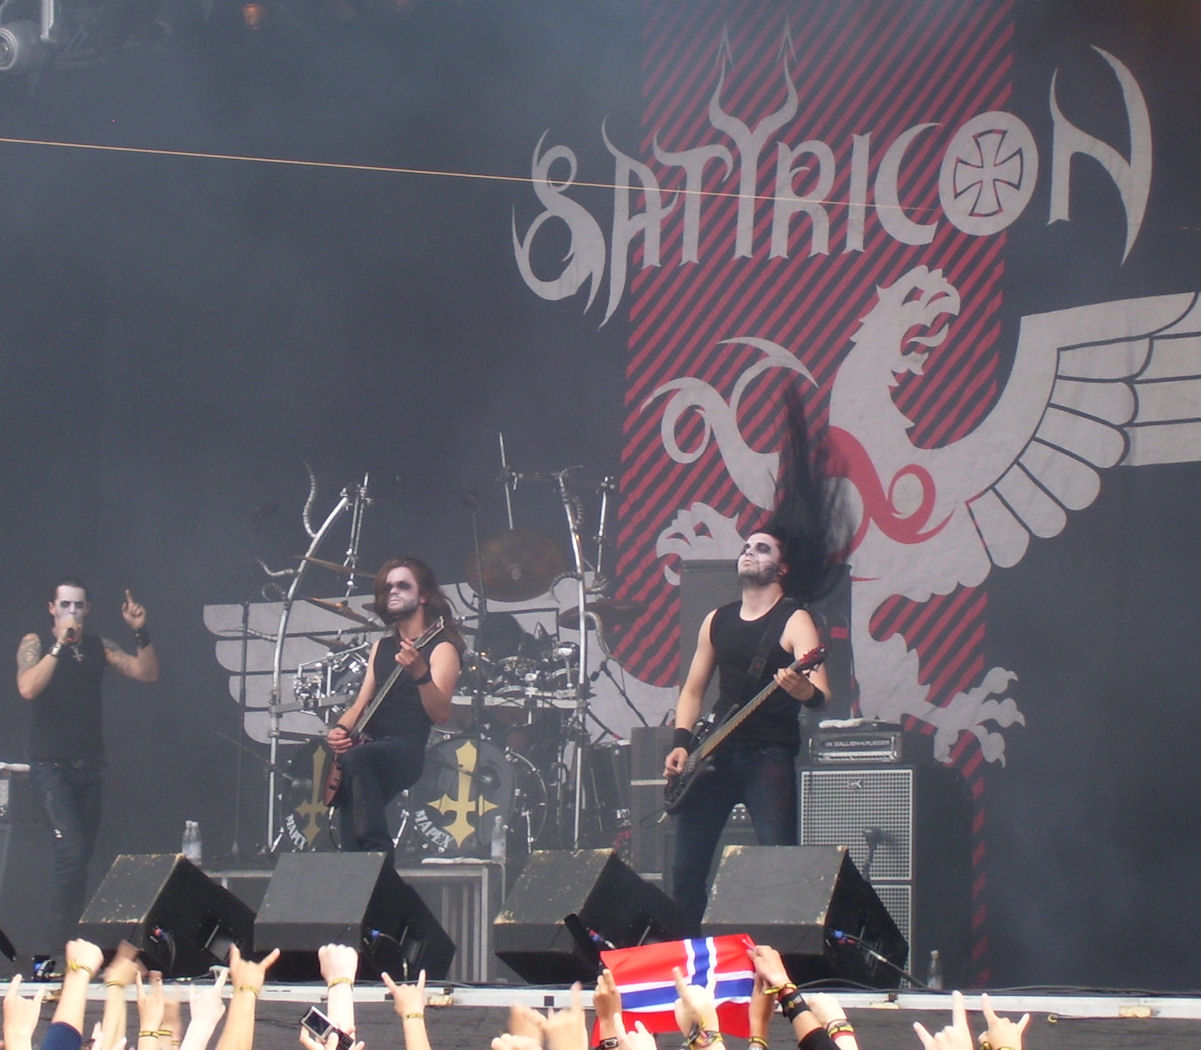 Satyricon at Metaltown 2008